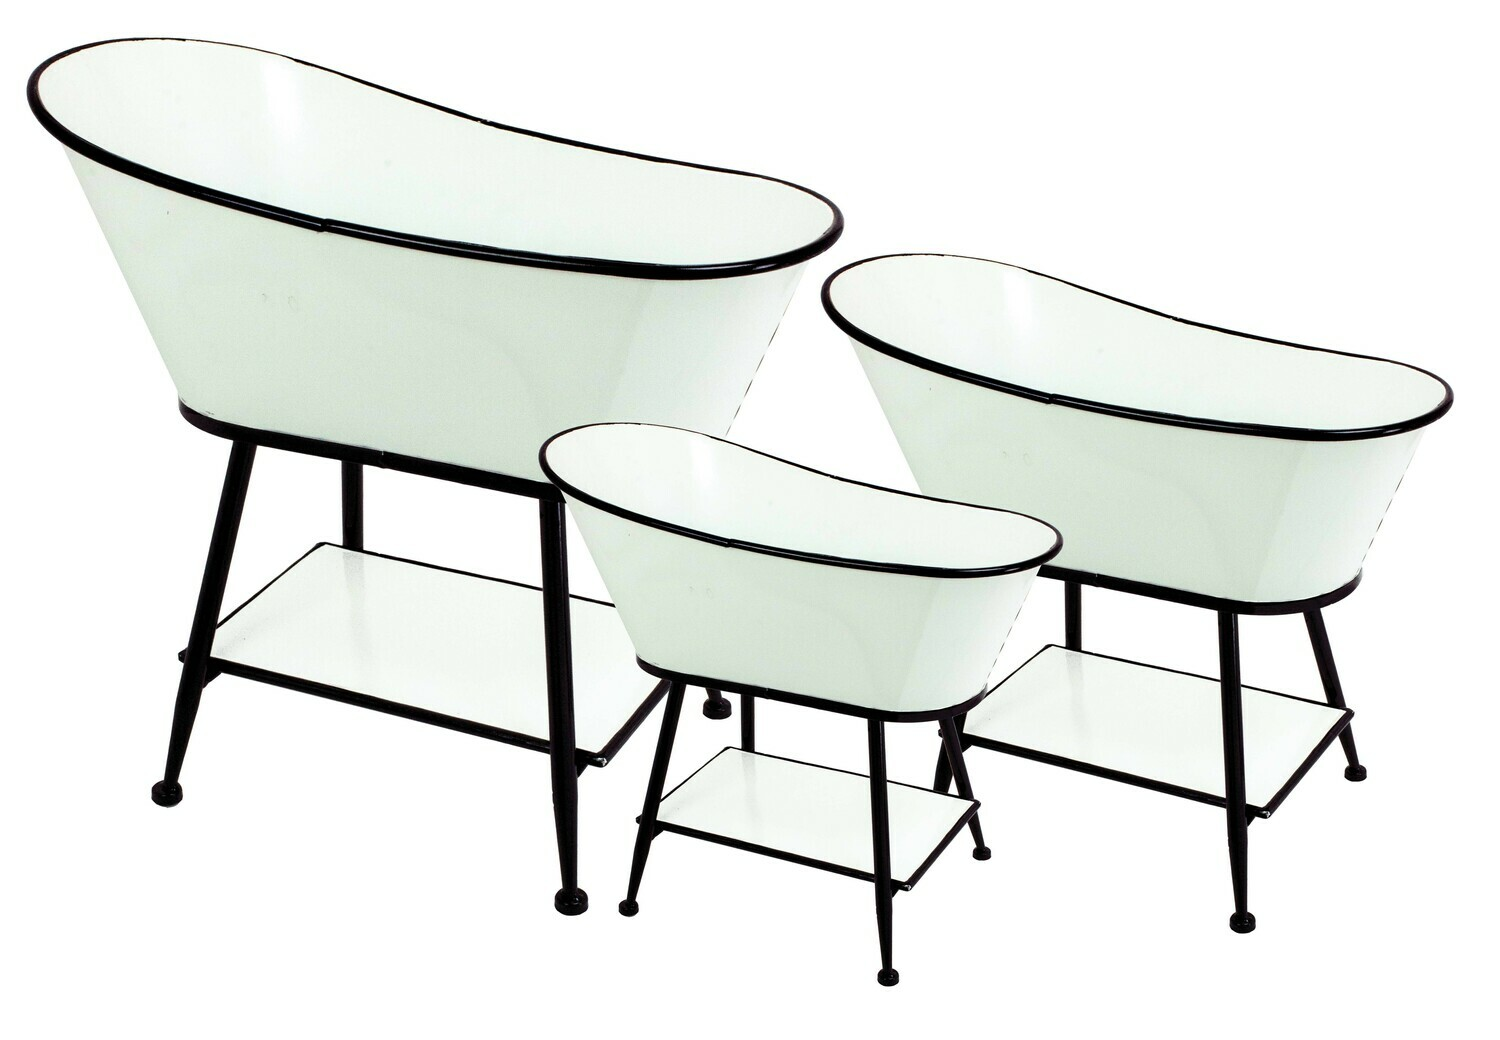 Standing Tub Planters - Small